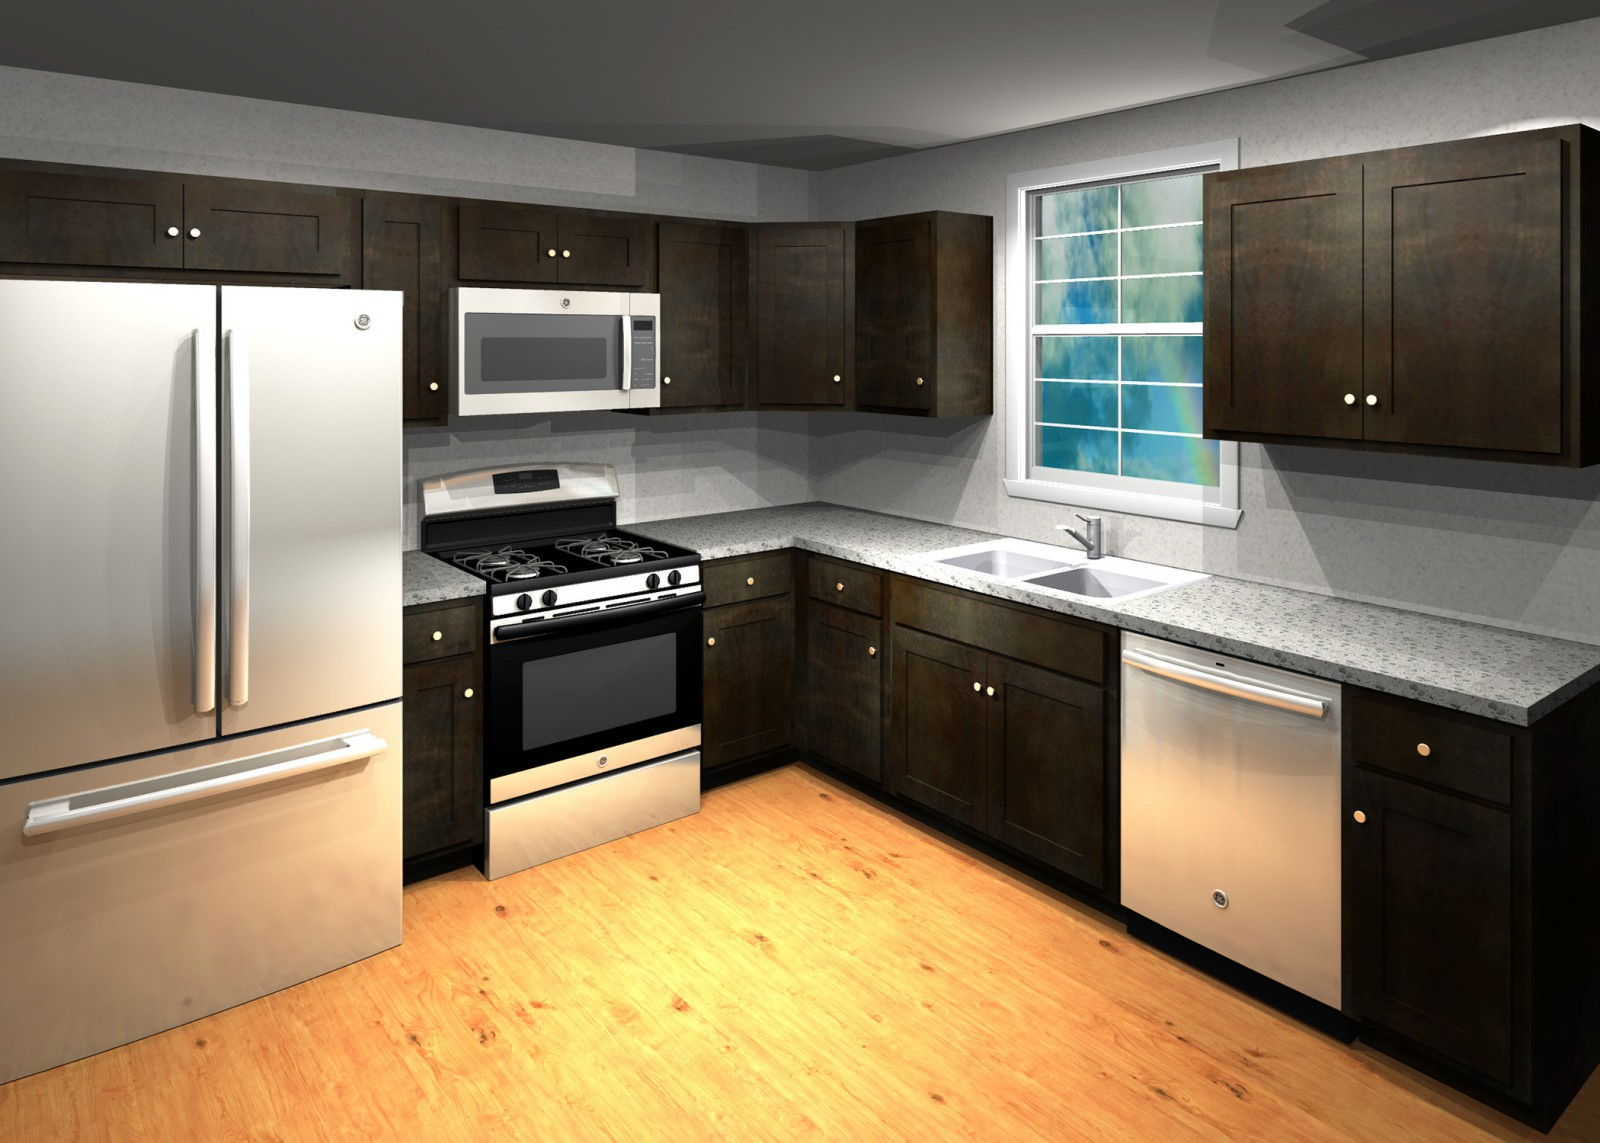 Koch Express Cabinets - Discount Cabinets & Appliances